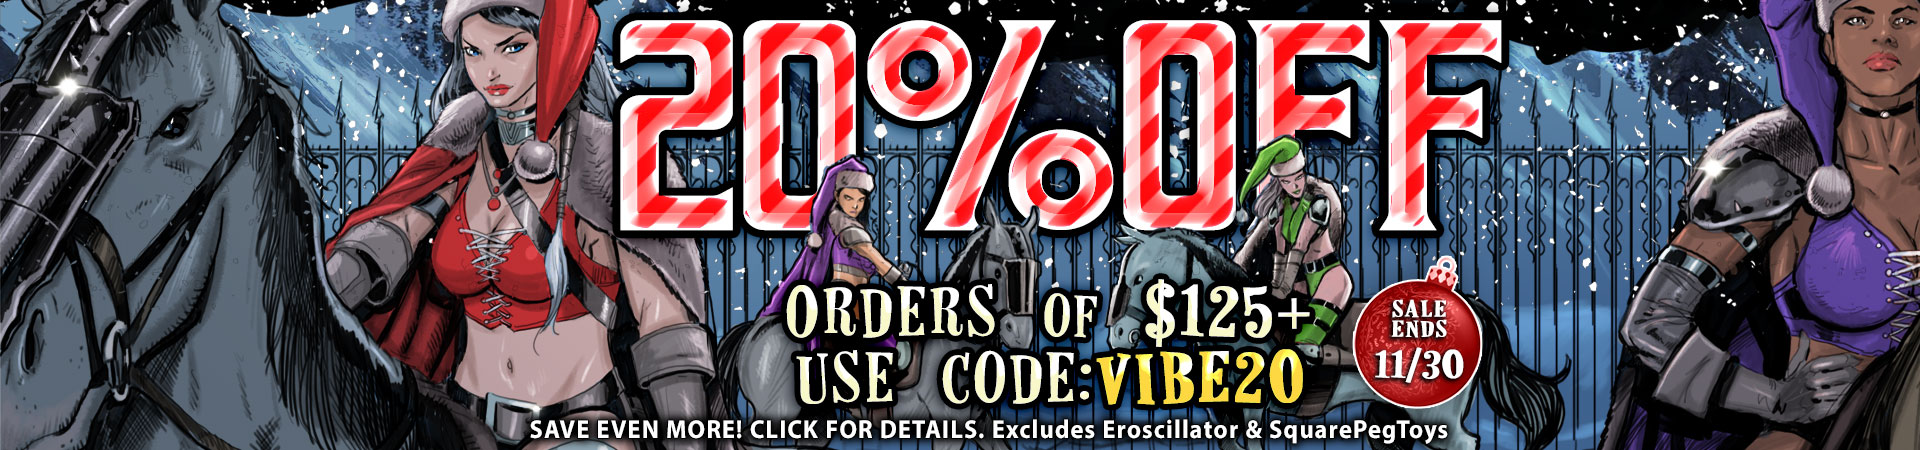 20% OFF ORDERS OF $125+ USE CODE: VIBE20